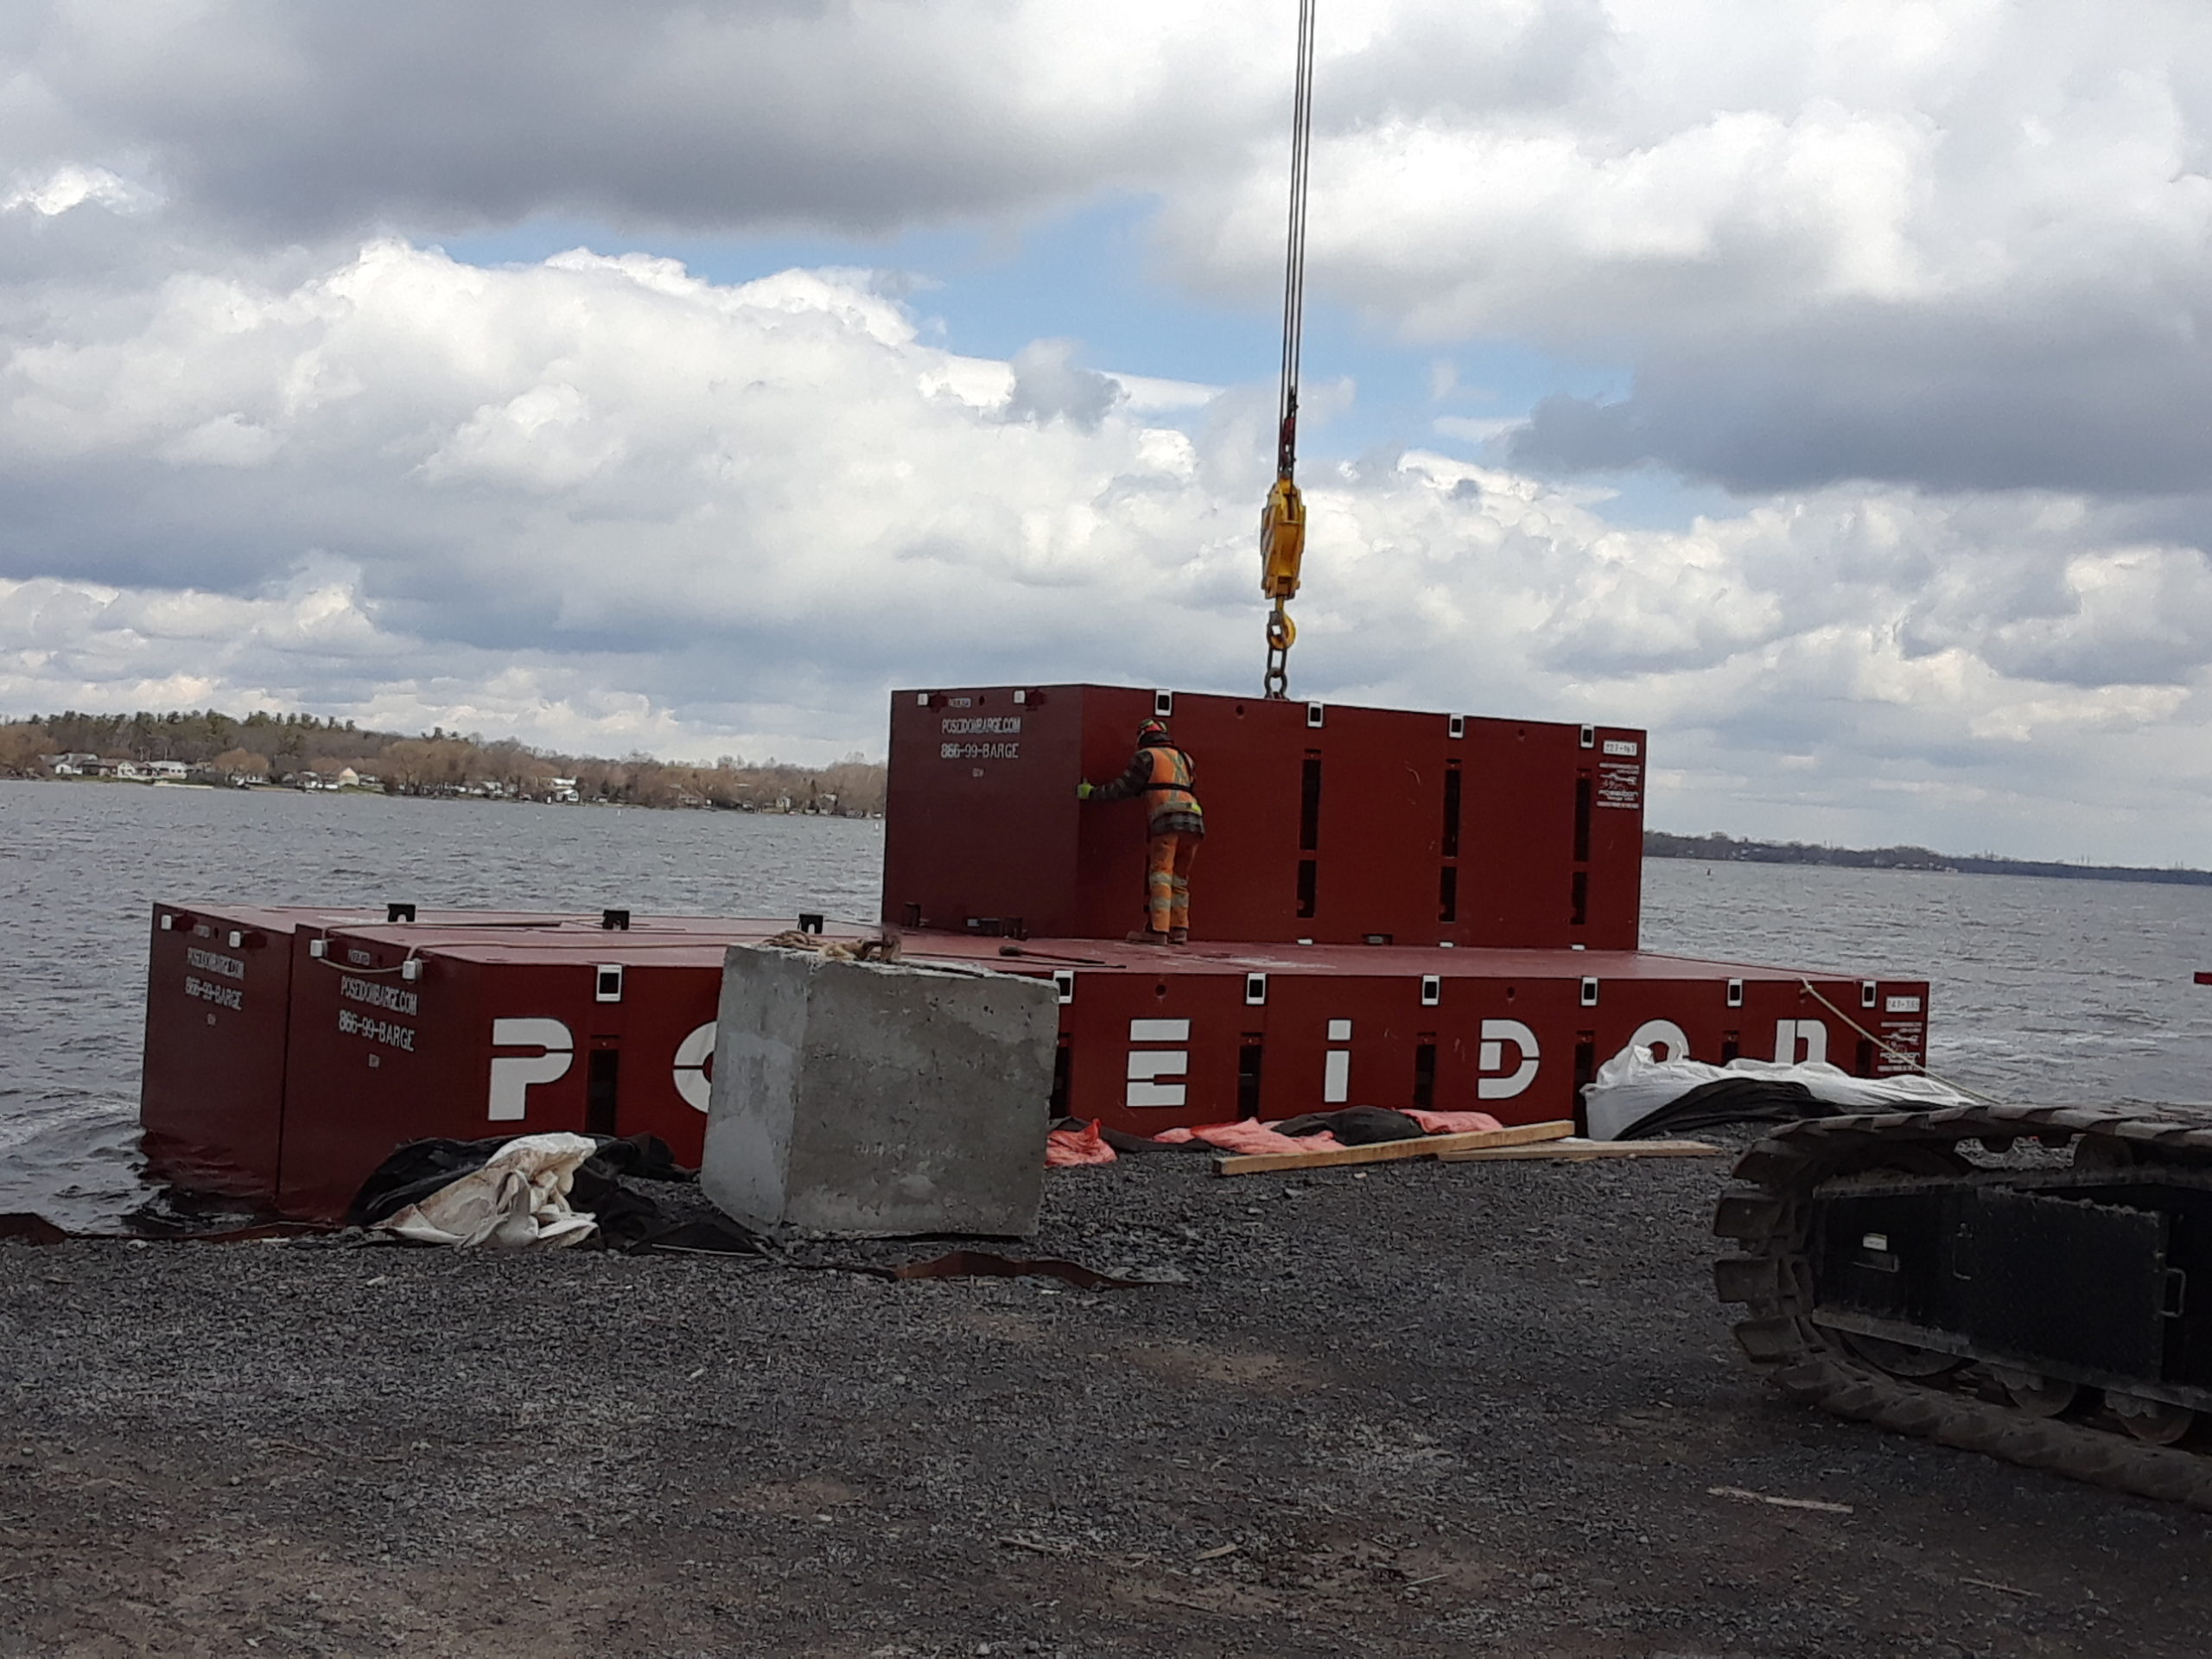 Assembling the new barge